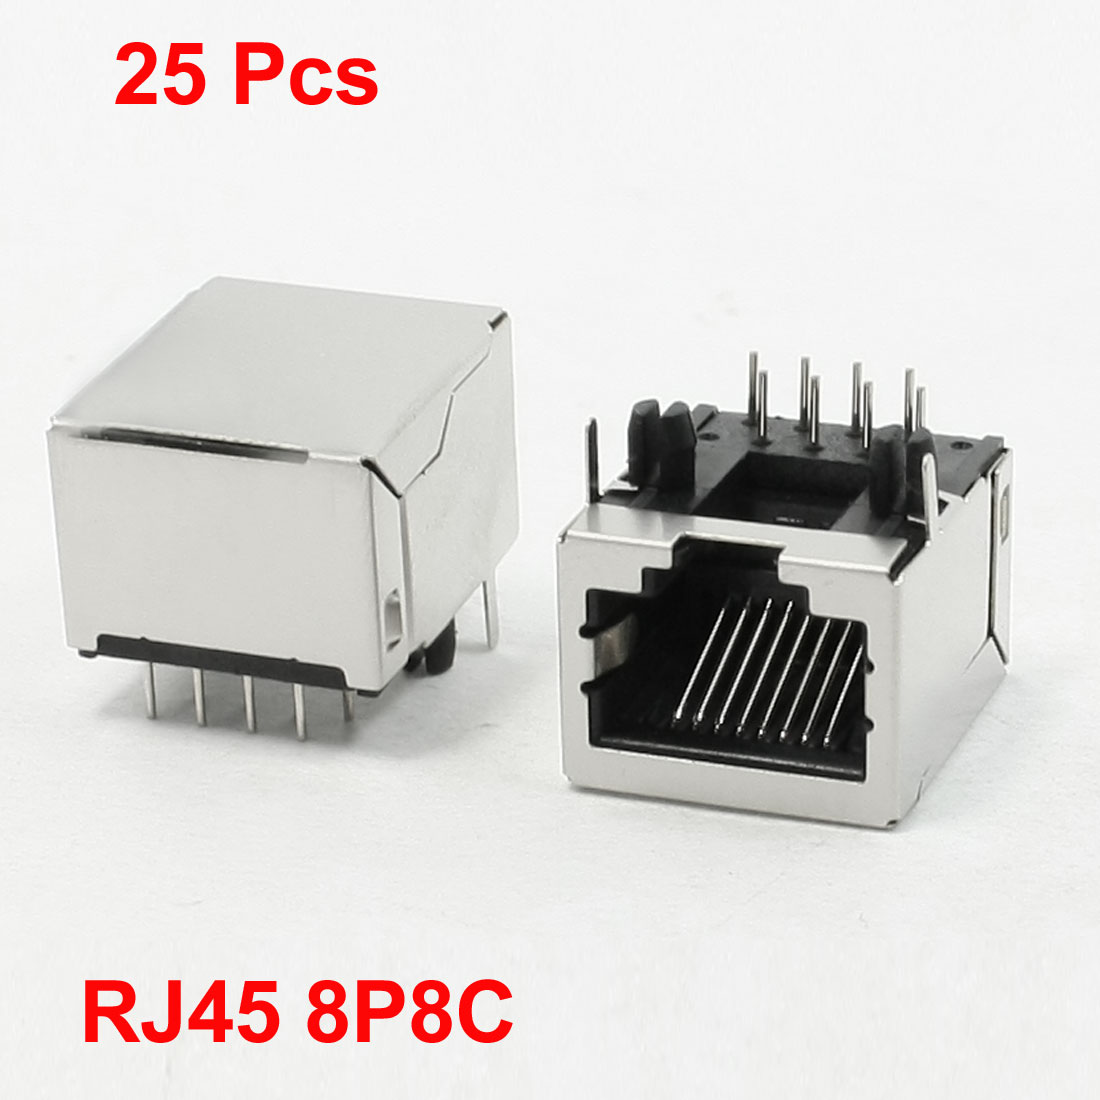 25Pcs RJ45 PCB Jack Connector 8 Right Angle Rear Pins 18 x 15.5 x 12mm